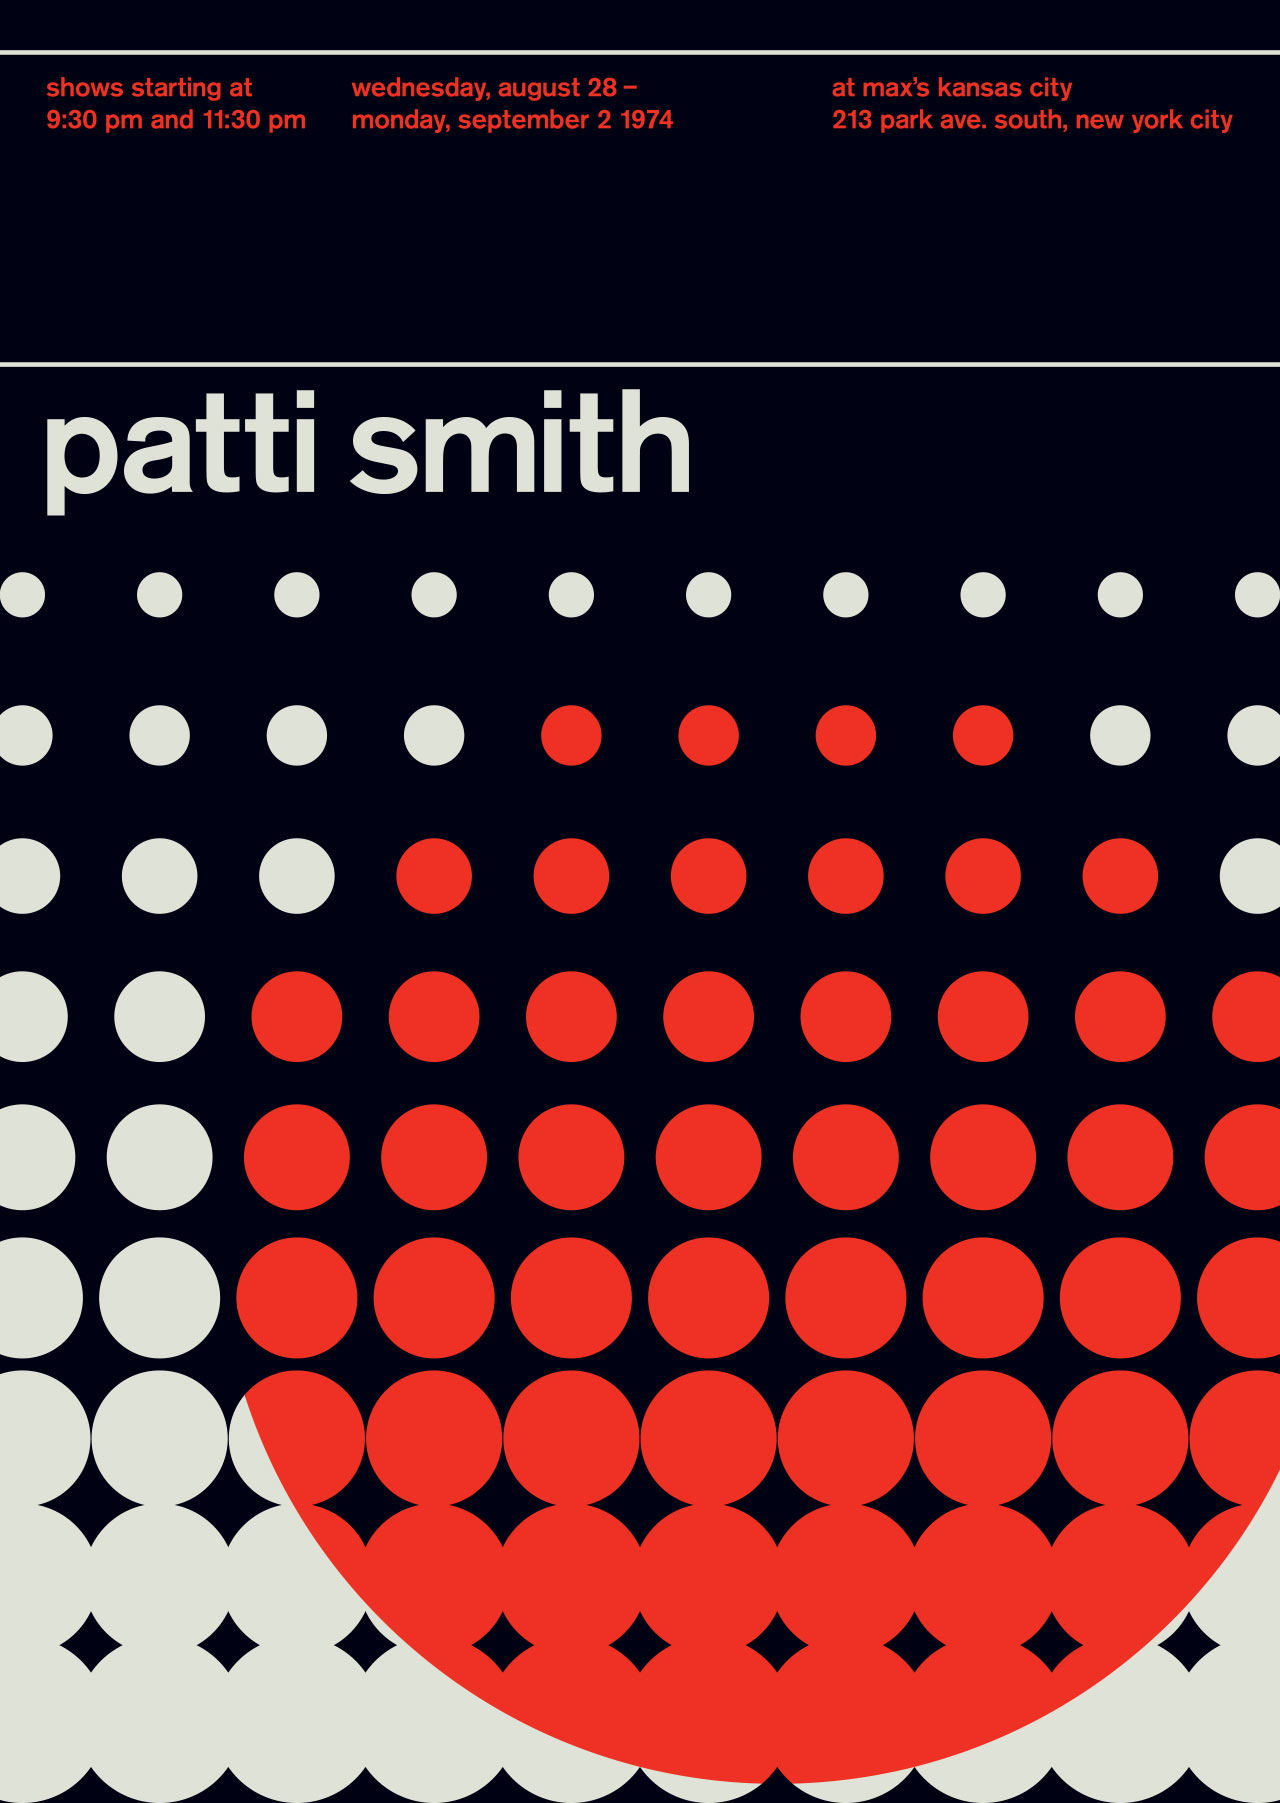 Swissted-Legends_Posters-15-patti_smith_legends_series